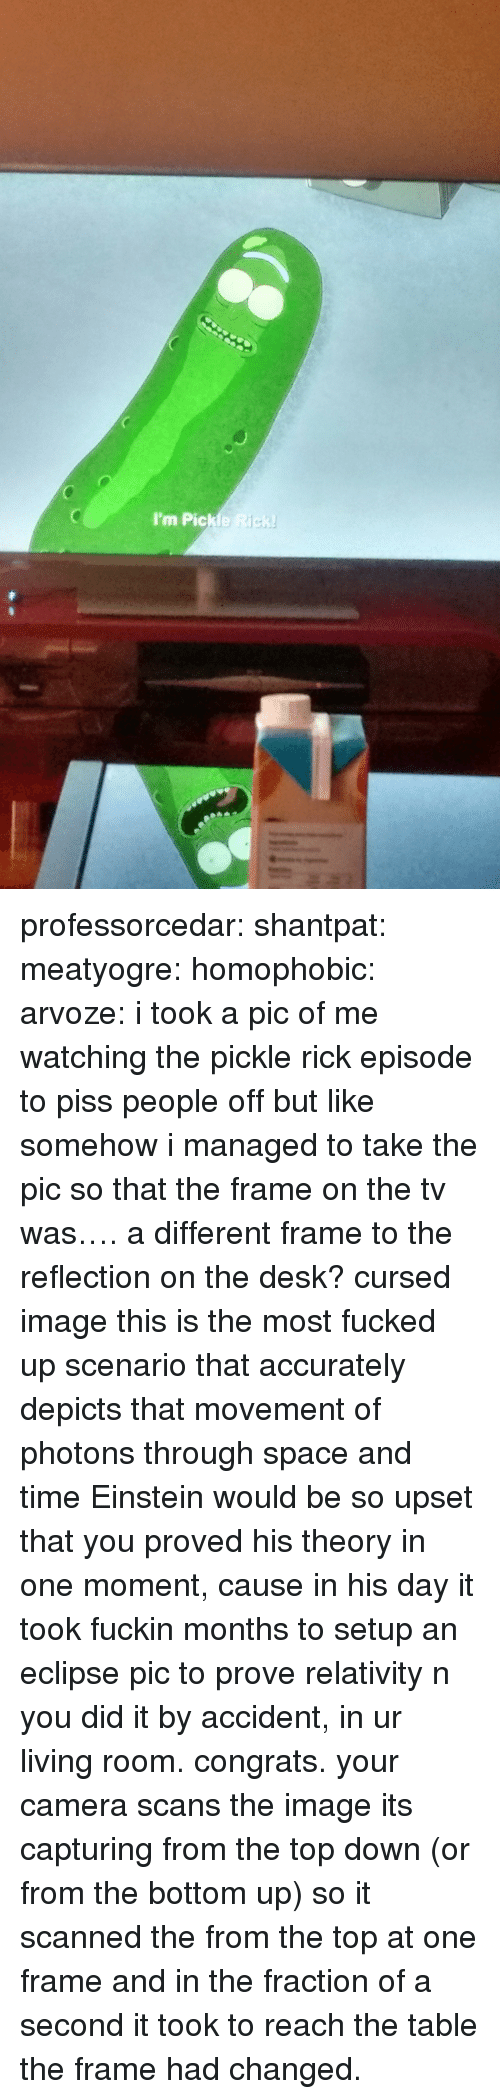 Pic Of Me: I'm Pickle Rick professorcedar:  shantpat:  meatyogre:  homophobic:  arvoze: i took a pic of me watching the pickle rick episode to piss people off but like somehow i managed to take the pic so that the frame on the tv was…. a different frame to the reflection on the desk?  cursed image  this is the most fucked up scenario that accurately depicts that movement of photons through space and time  Einstein would be so upset that you proved his theory in one moment, cause in his day it took fuckin months to setup an eclipse pic to prove relativity n you did it by accident, in ur living room. congrats.   your camera scans the image its capturing from the top down (or from the bottom up) so it scanned the from the top at one frame and in the fraction of a second it took to reach the table the frame had changed.